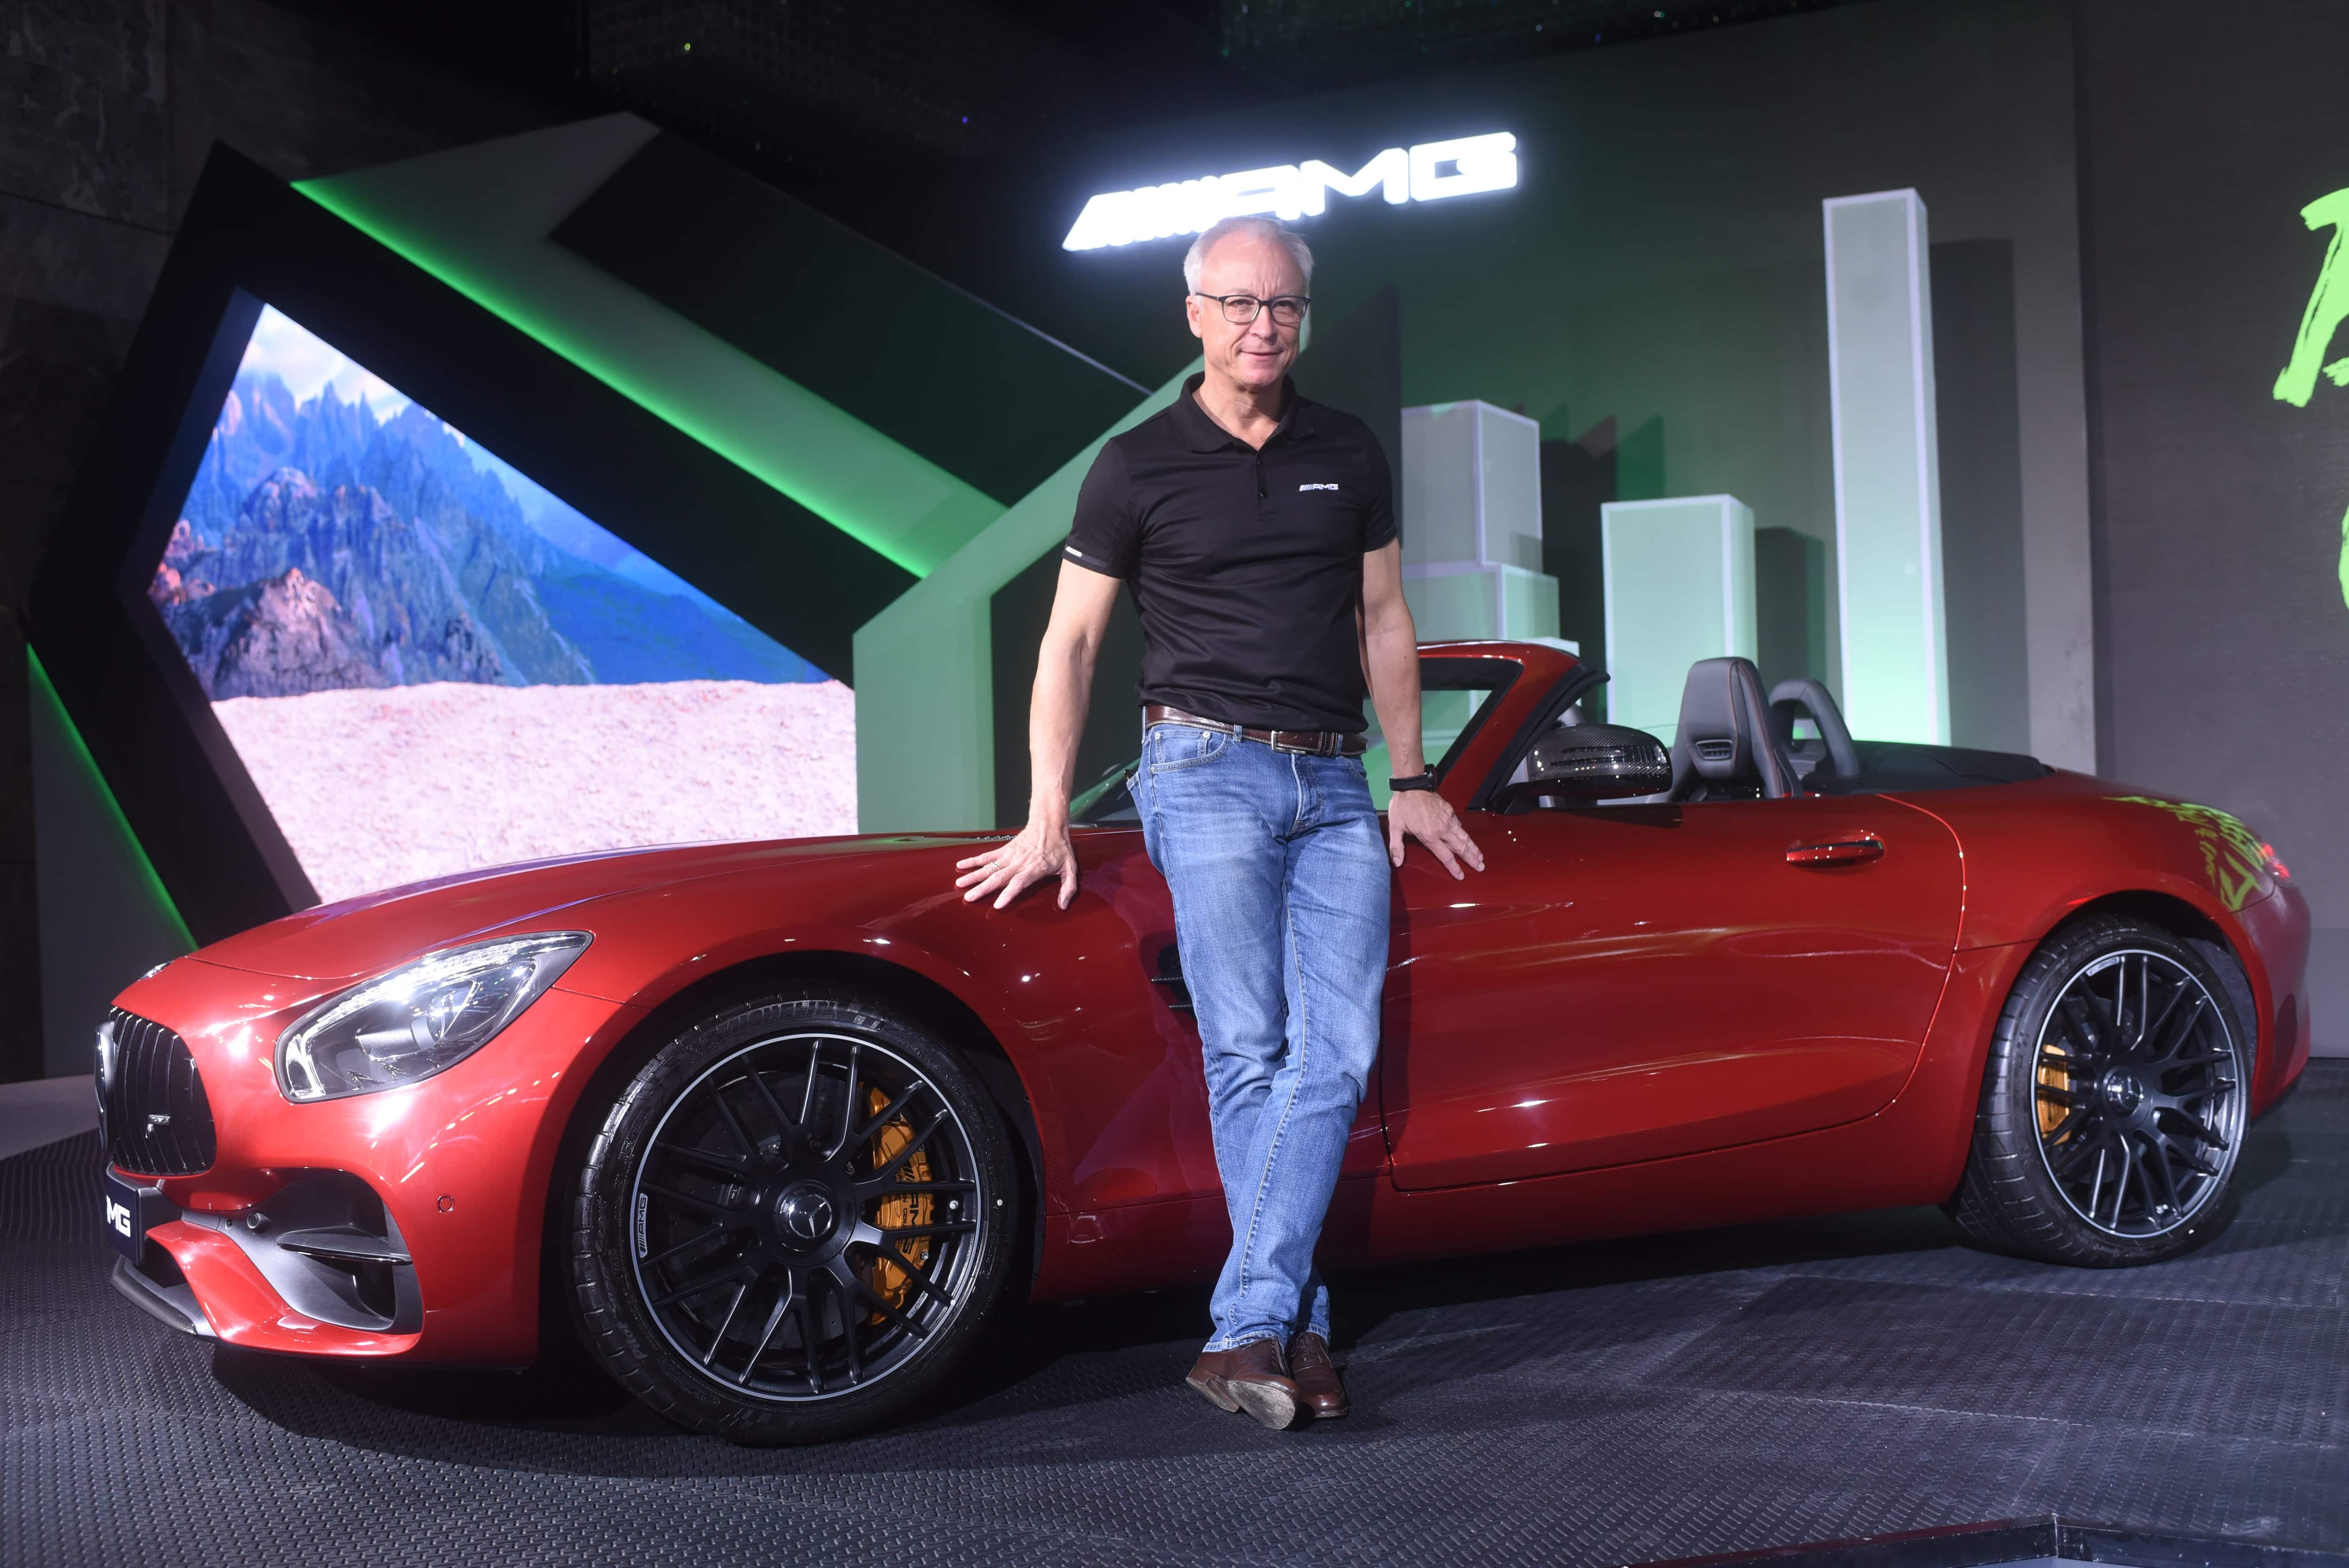 Mercedes Benz Launches Amg Gt R Amg Gt Roadster In India Price Starting At Rs 2 19 Crore Zee Business